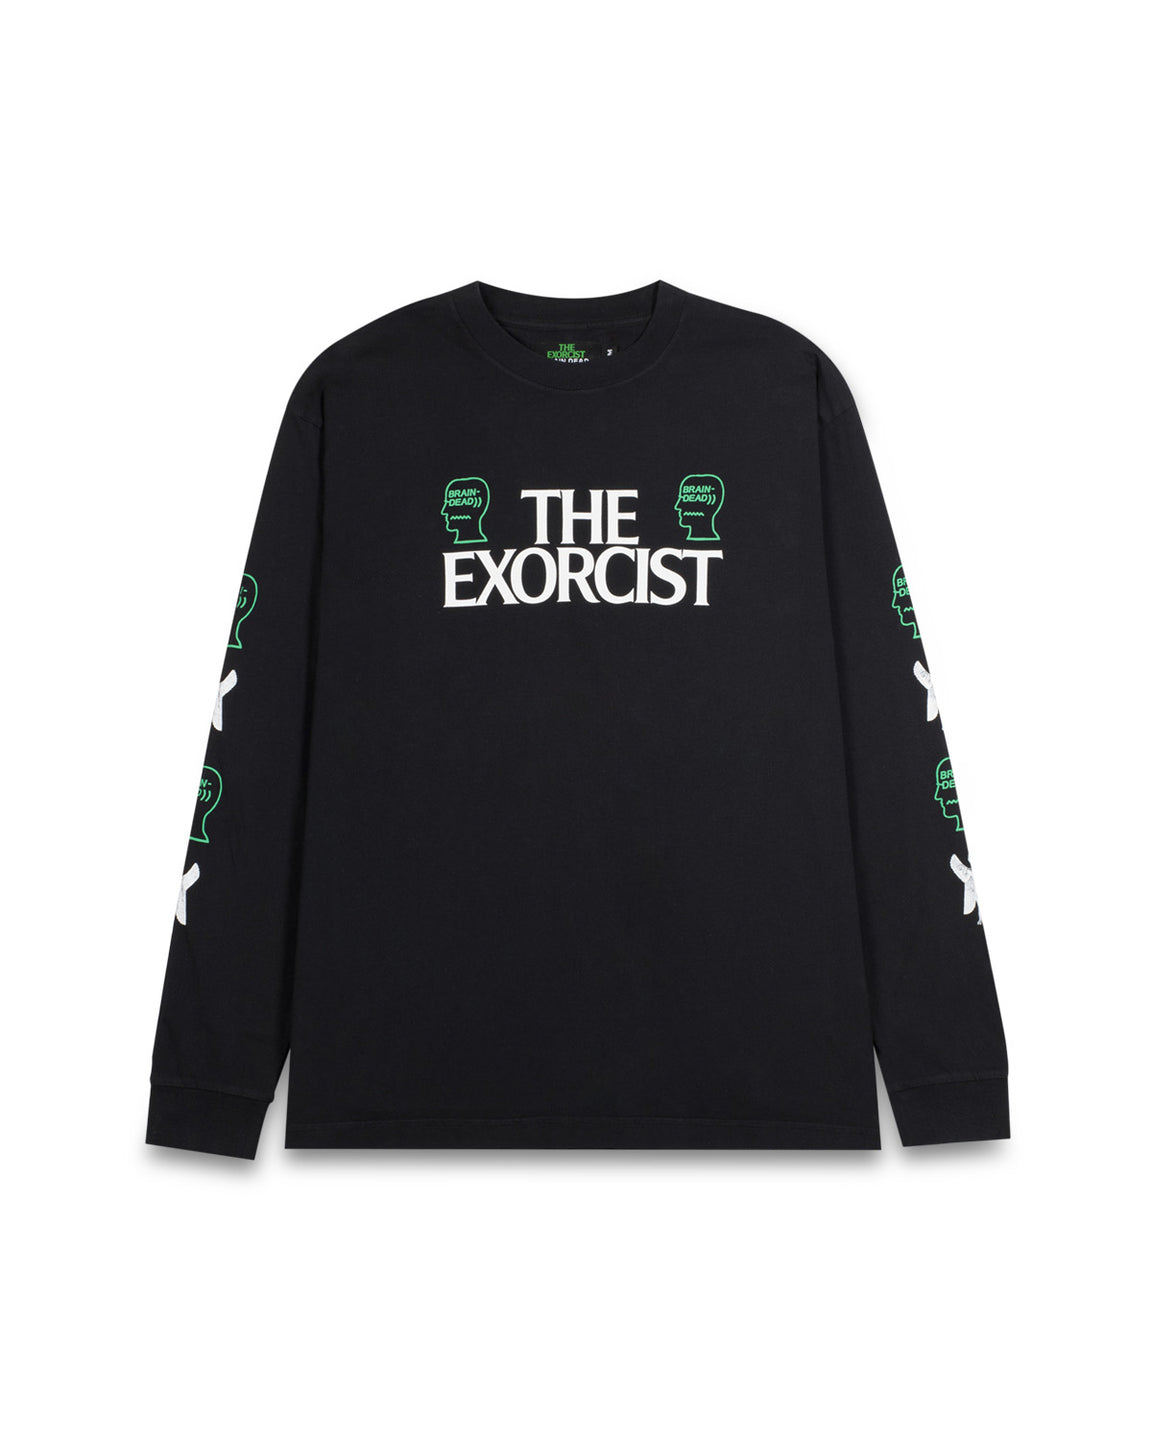 The Exorcist X Brain Dead Long Sleeve T-Shirt - Black